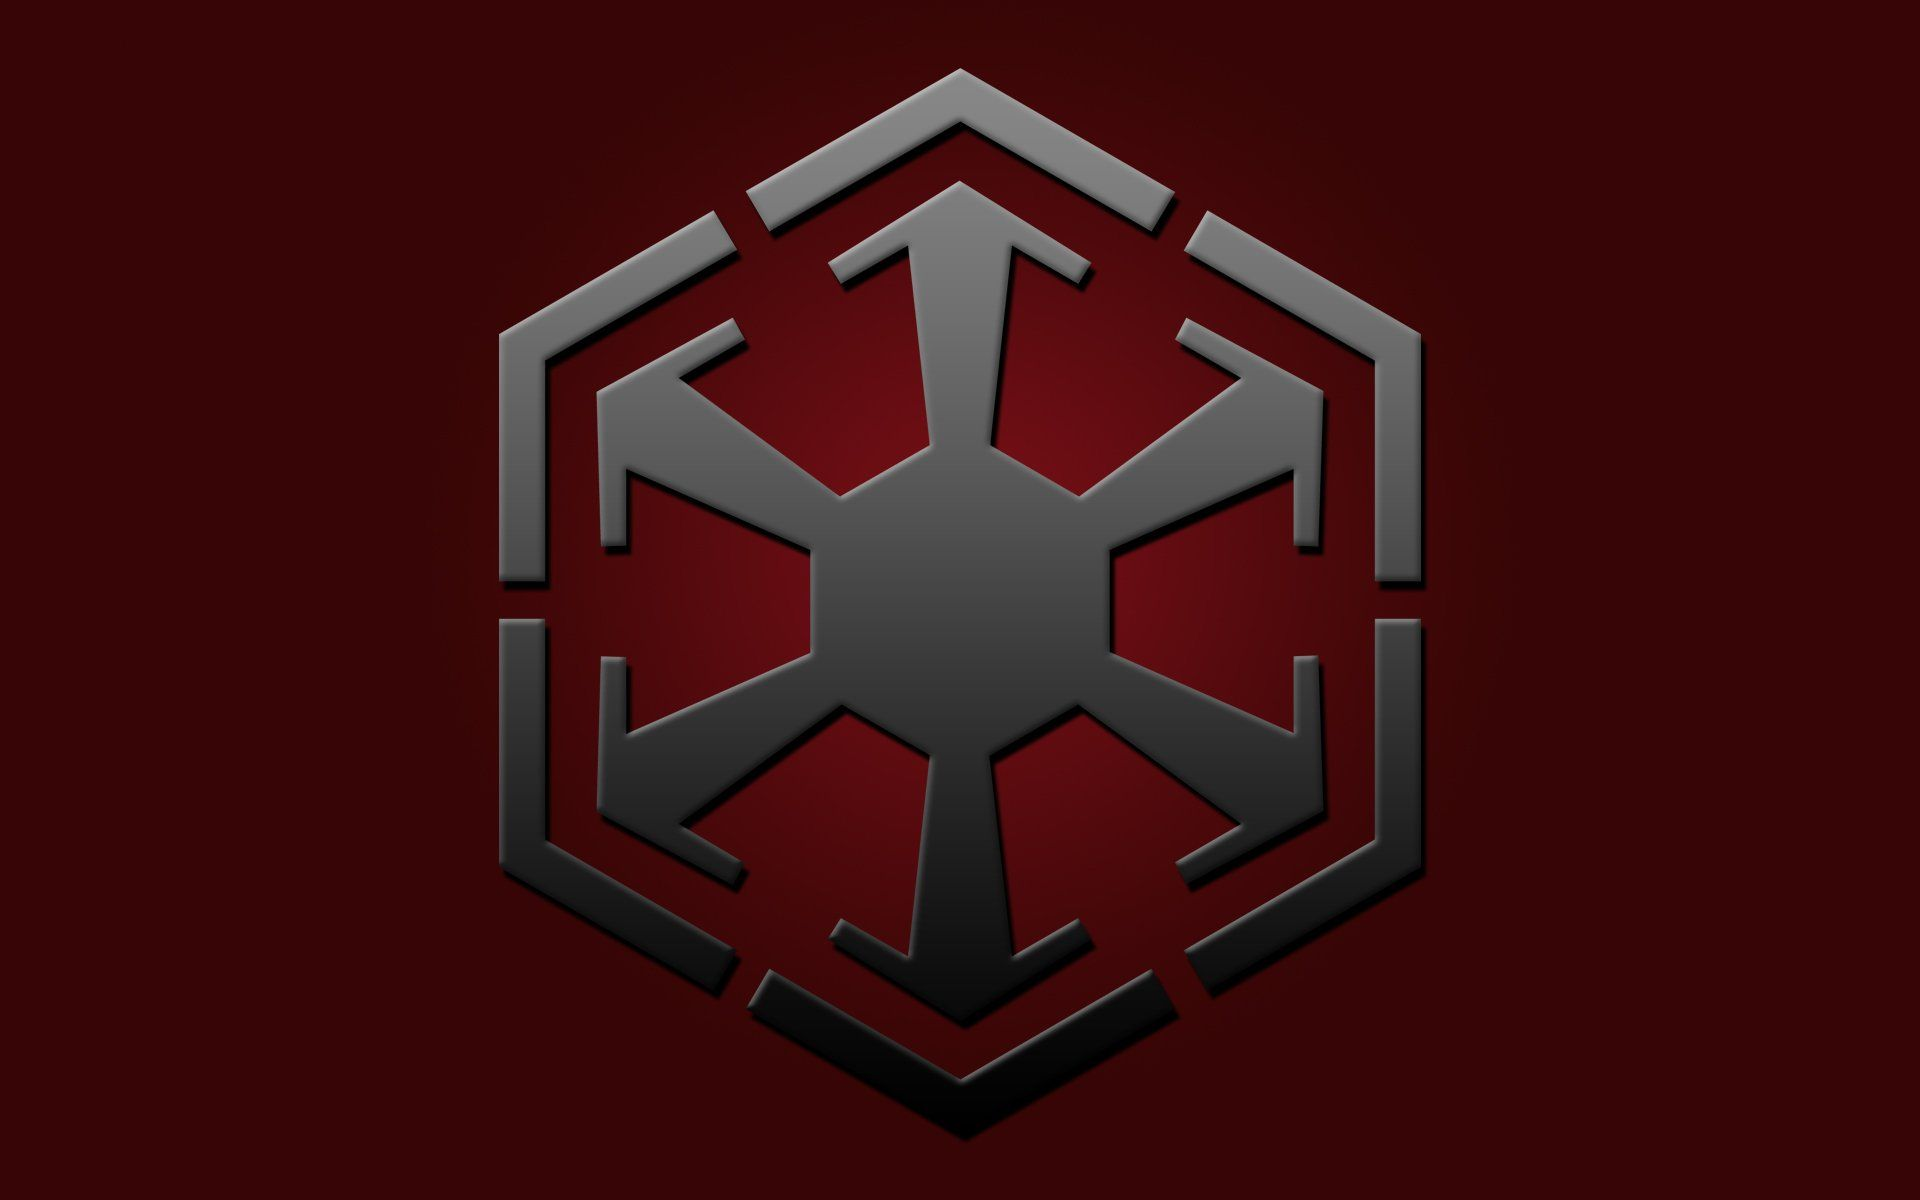 Star Wars Sith Empire Wallpapers Background Click Wallpapers